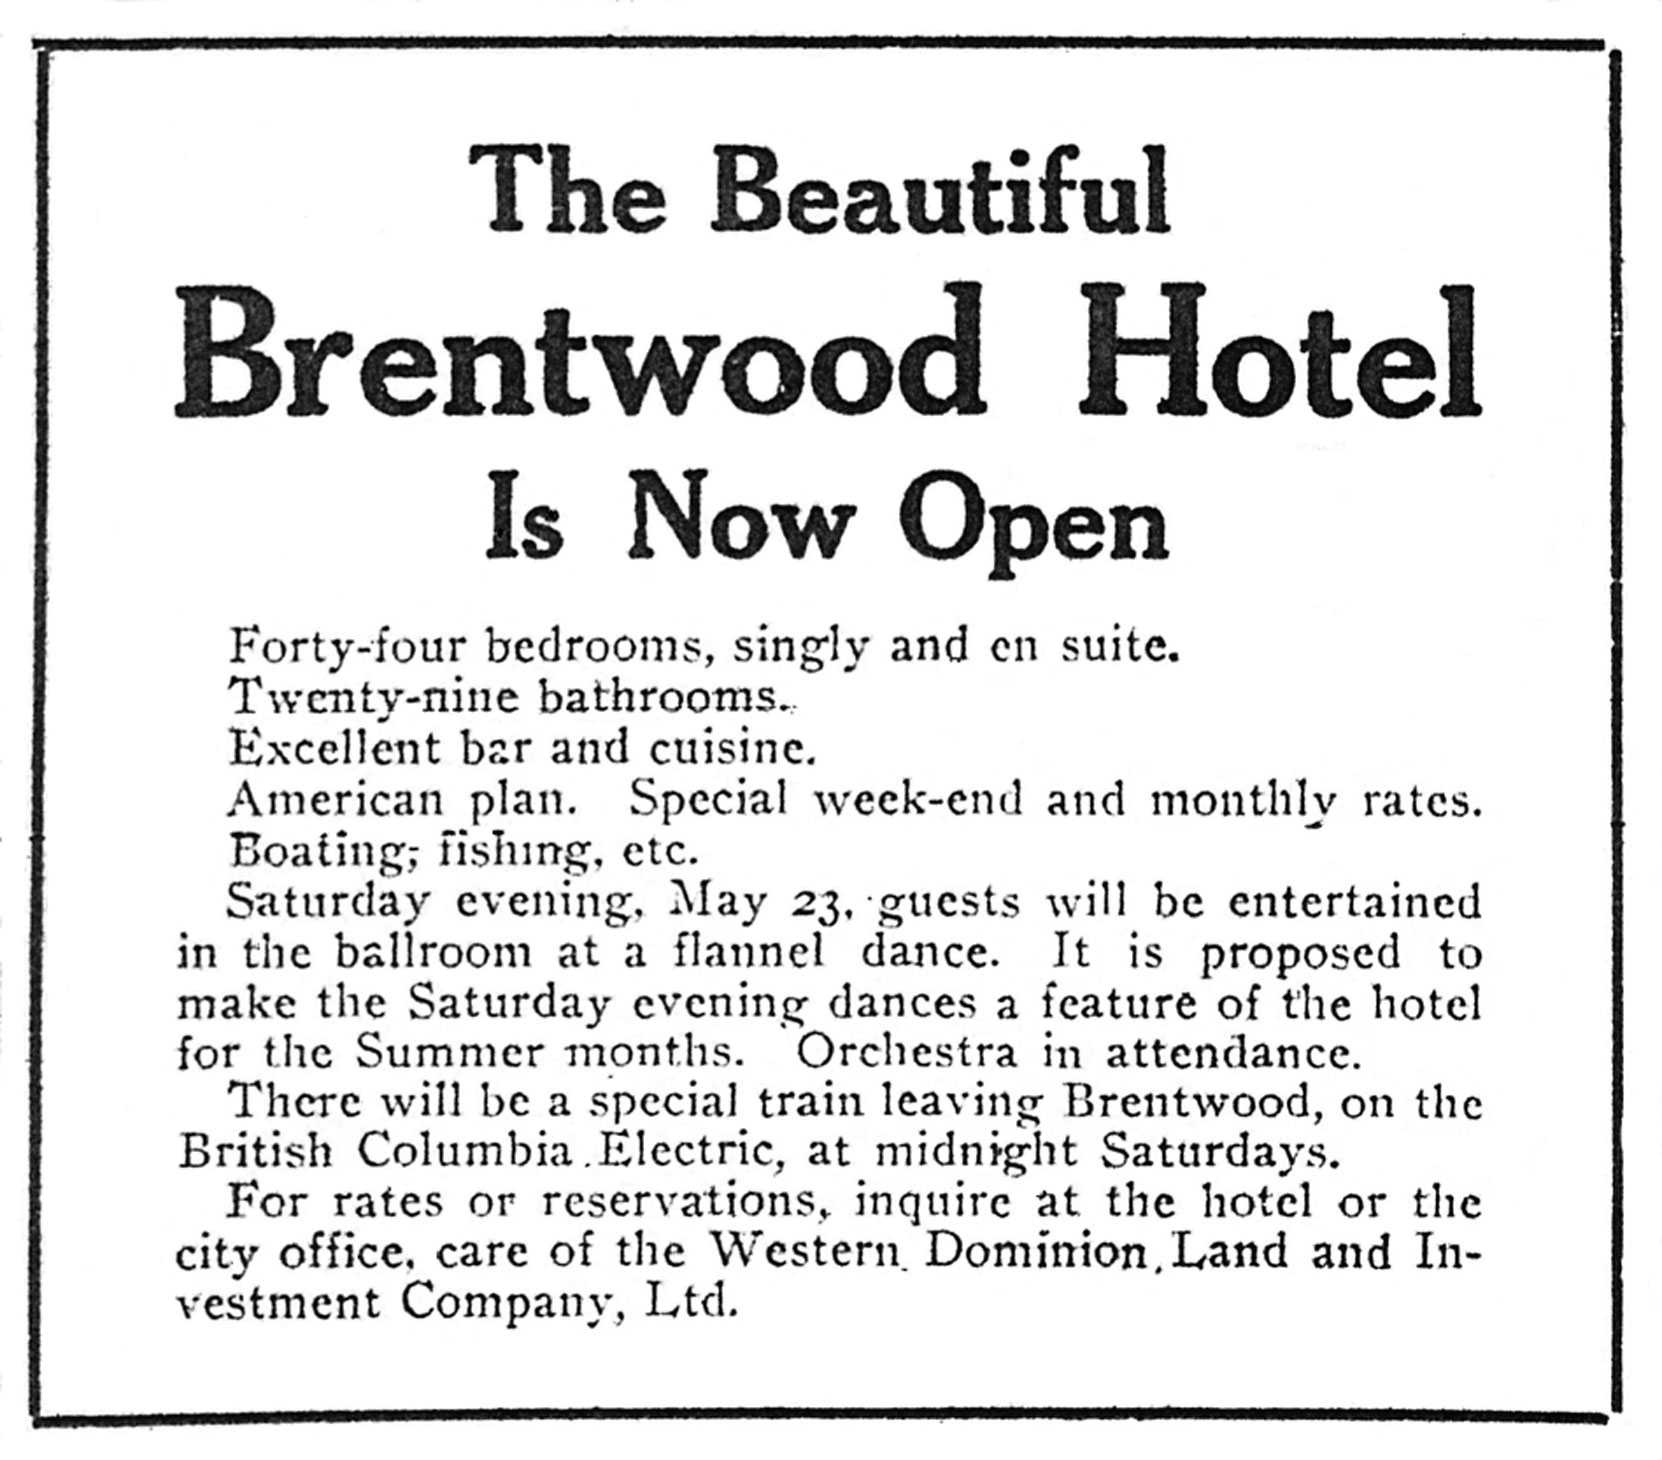 Victoria newspaper advertisement for Brentwood Hotel, May 1914 (Author's collection)